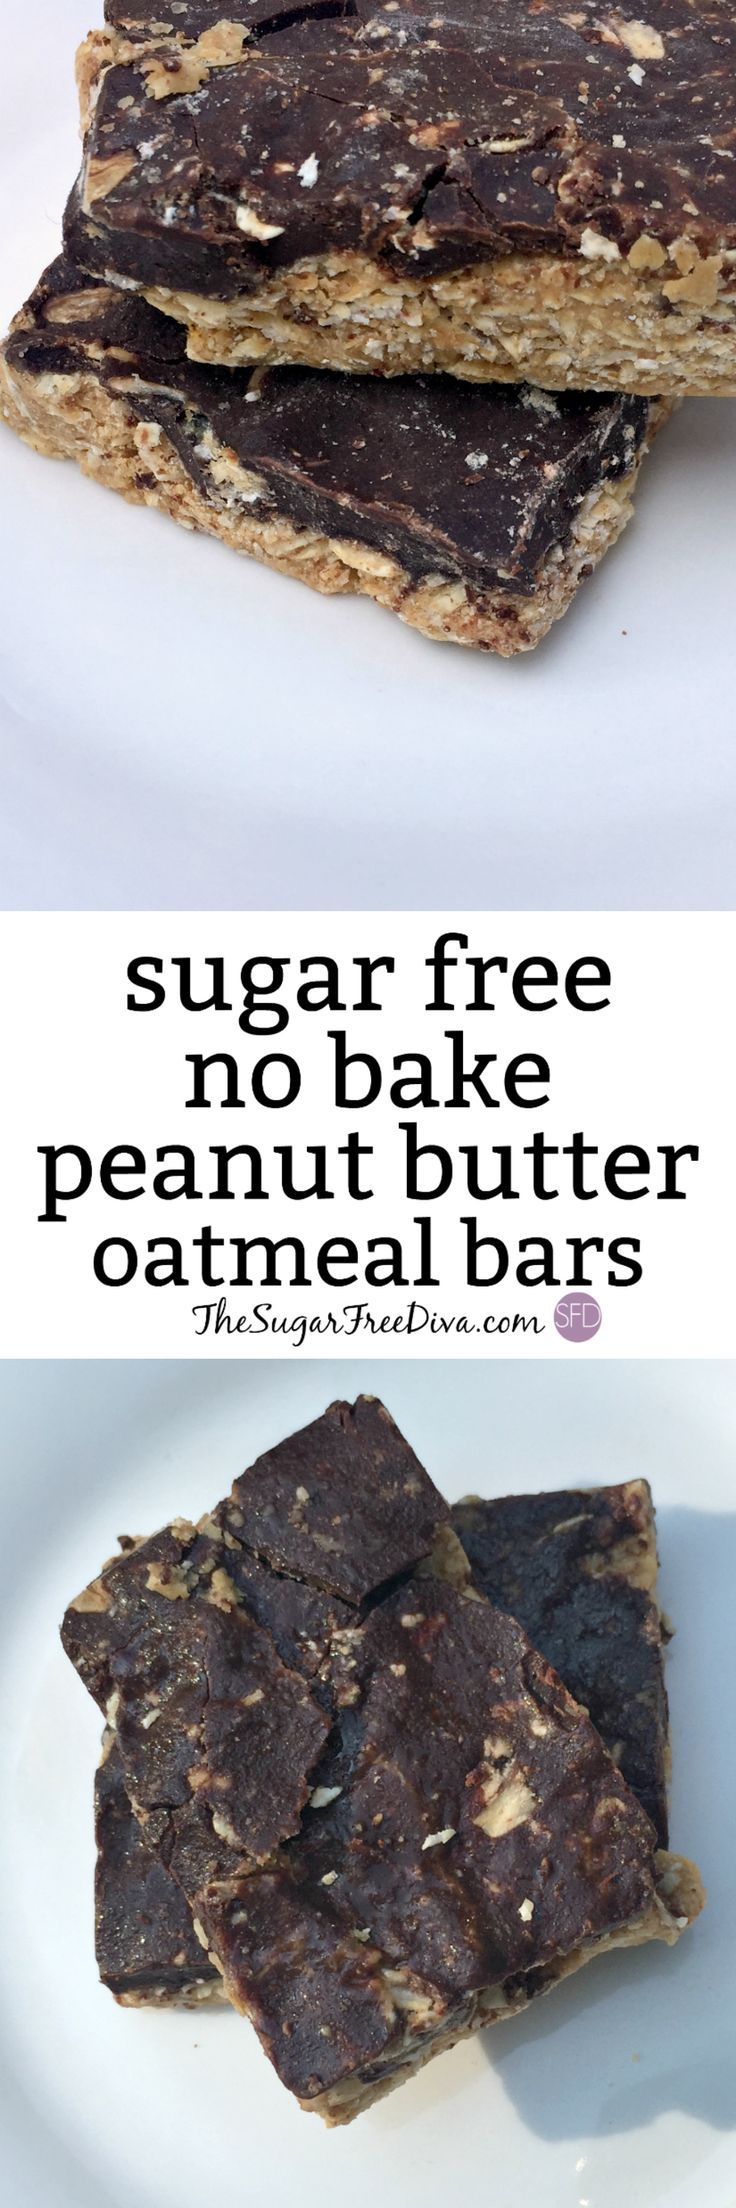 Finally! A recipe for a sugar free no bake peanut butter oatmeal bar. This yummy treat is easy to make and is a great snack or healthy dessert idea too. Kids and adults like this and the video too!!